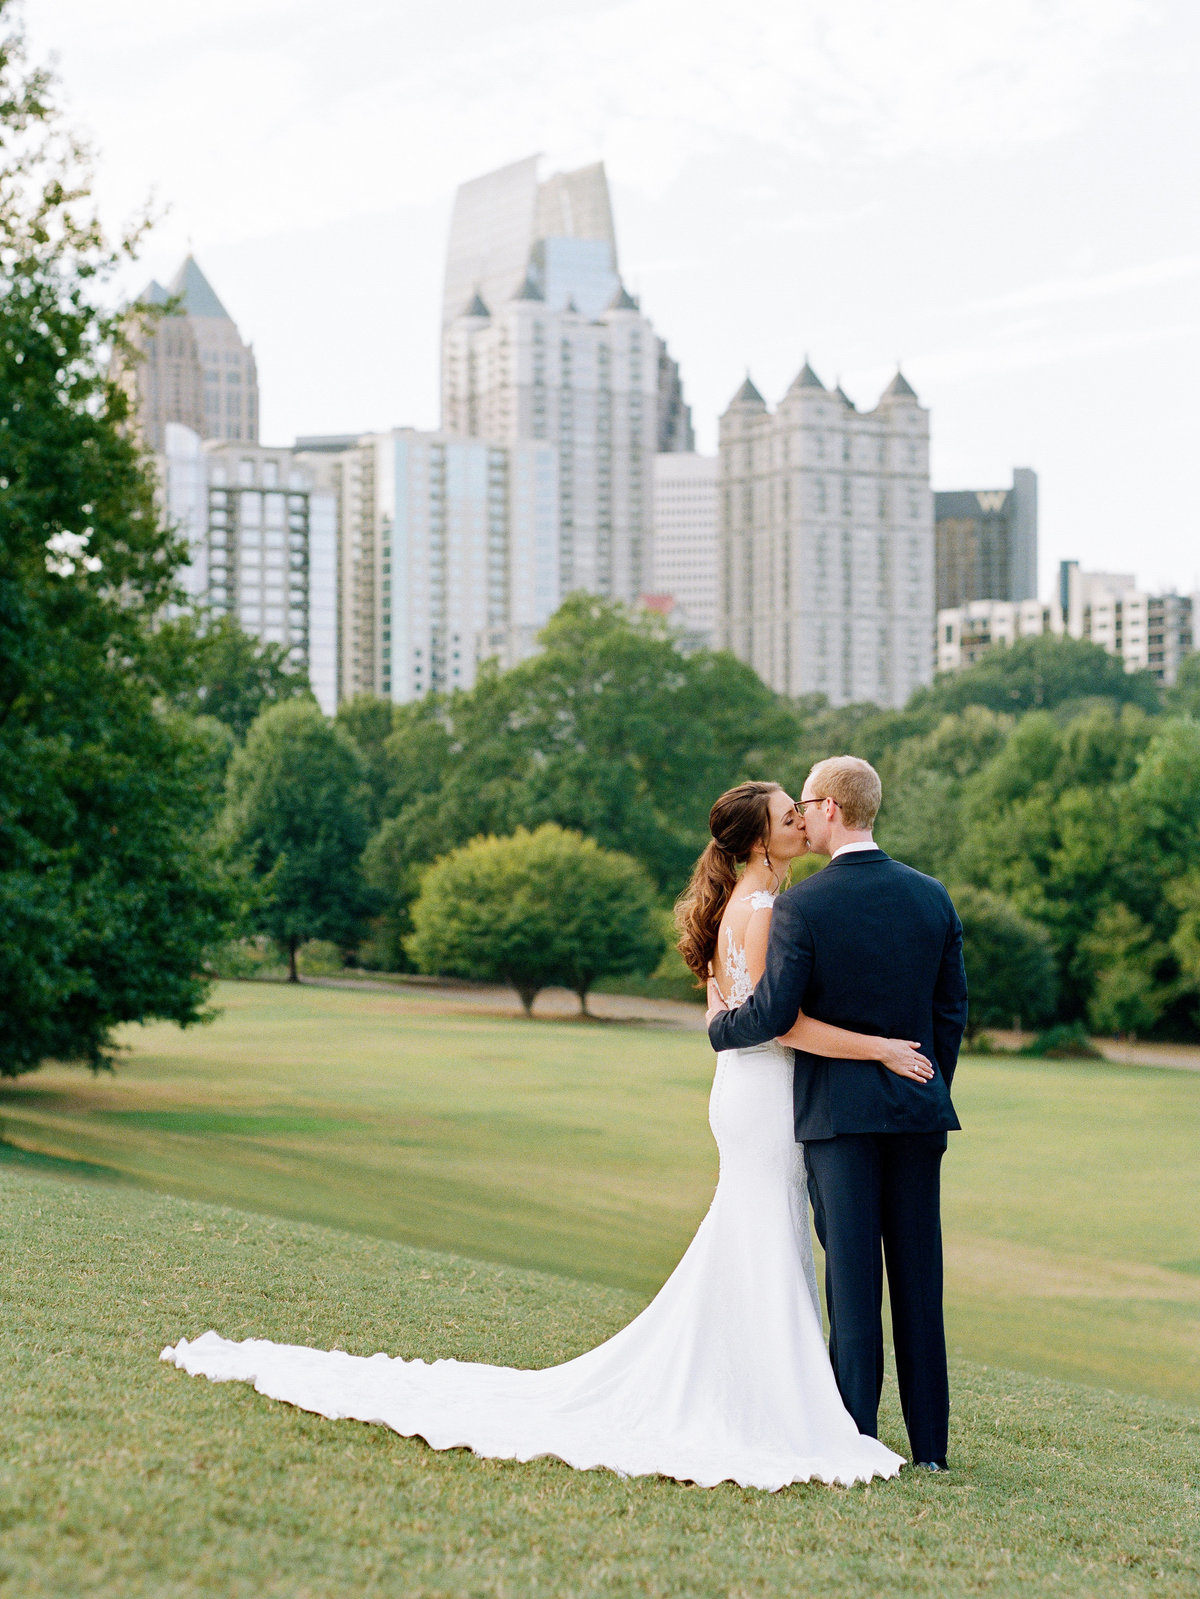 Wedding Photo Greystone at Piedmont Park Wedding